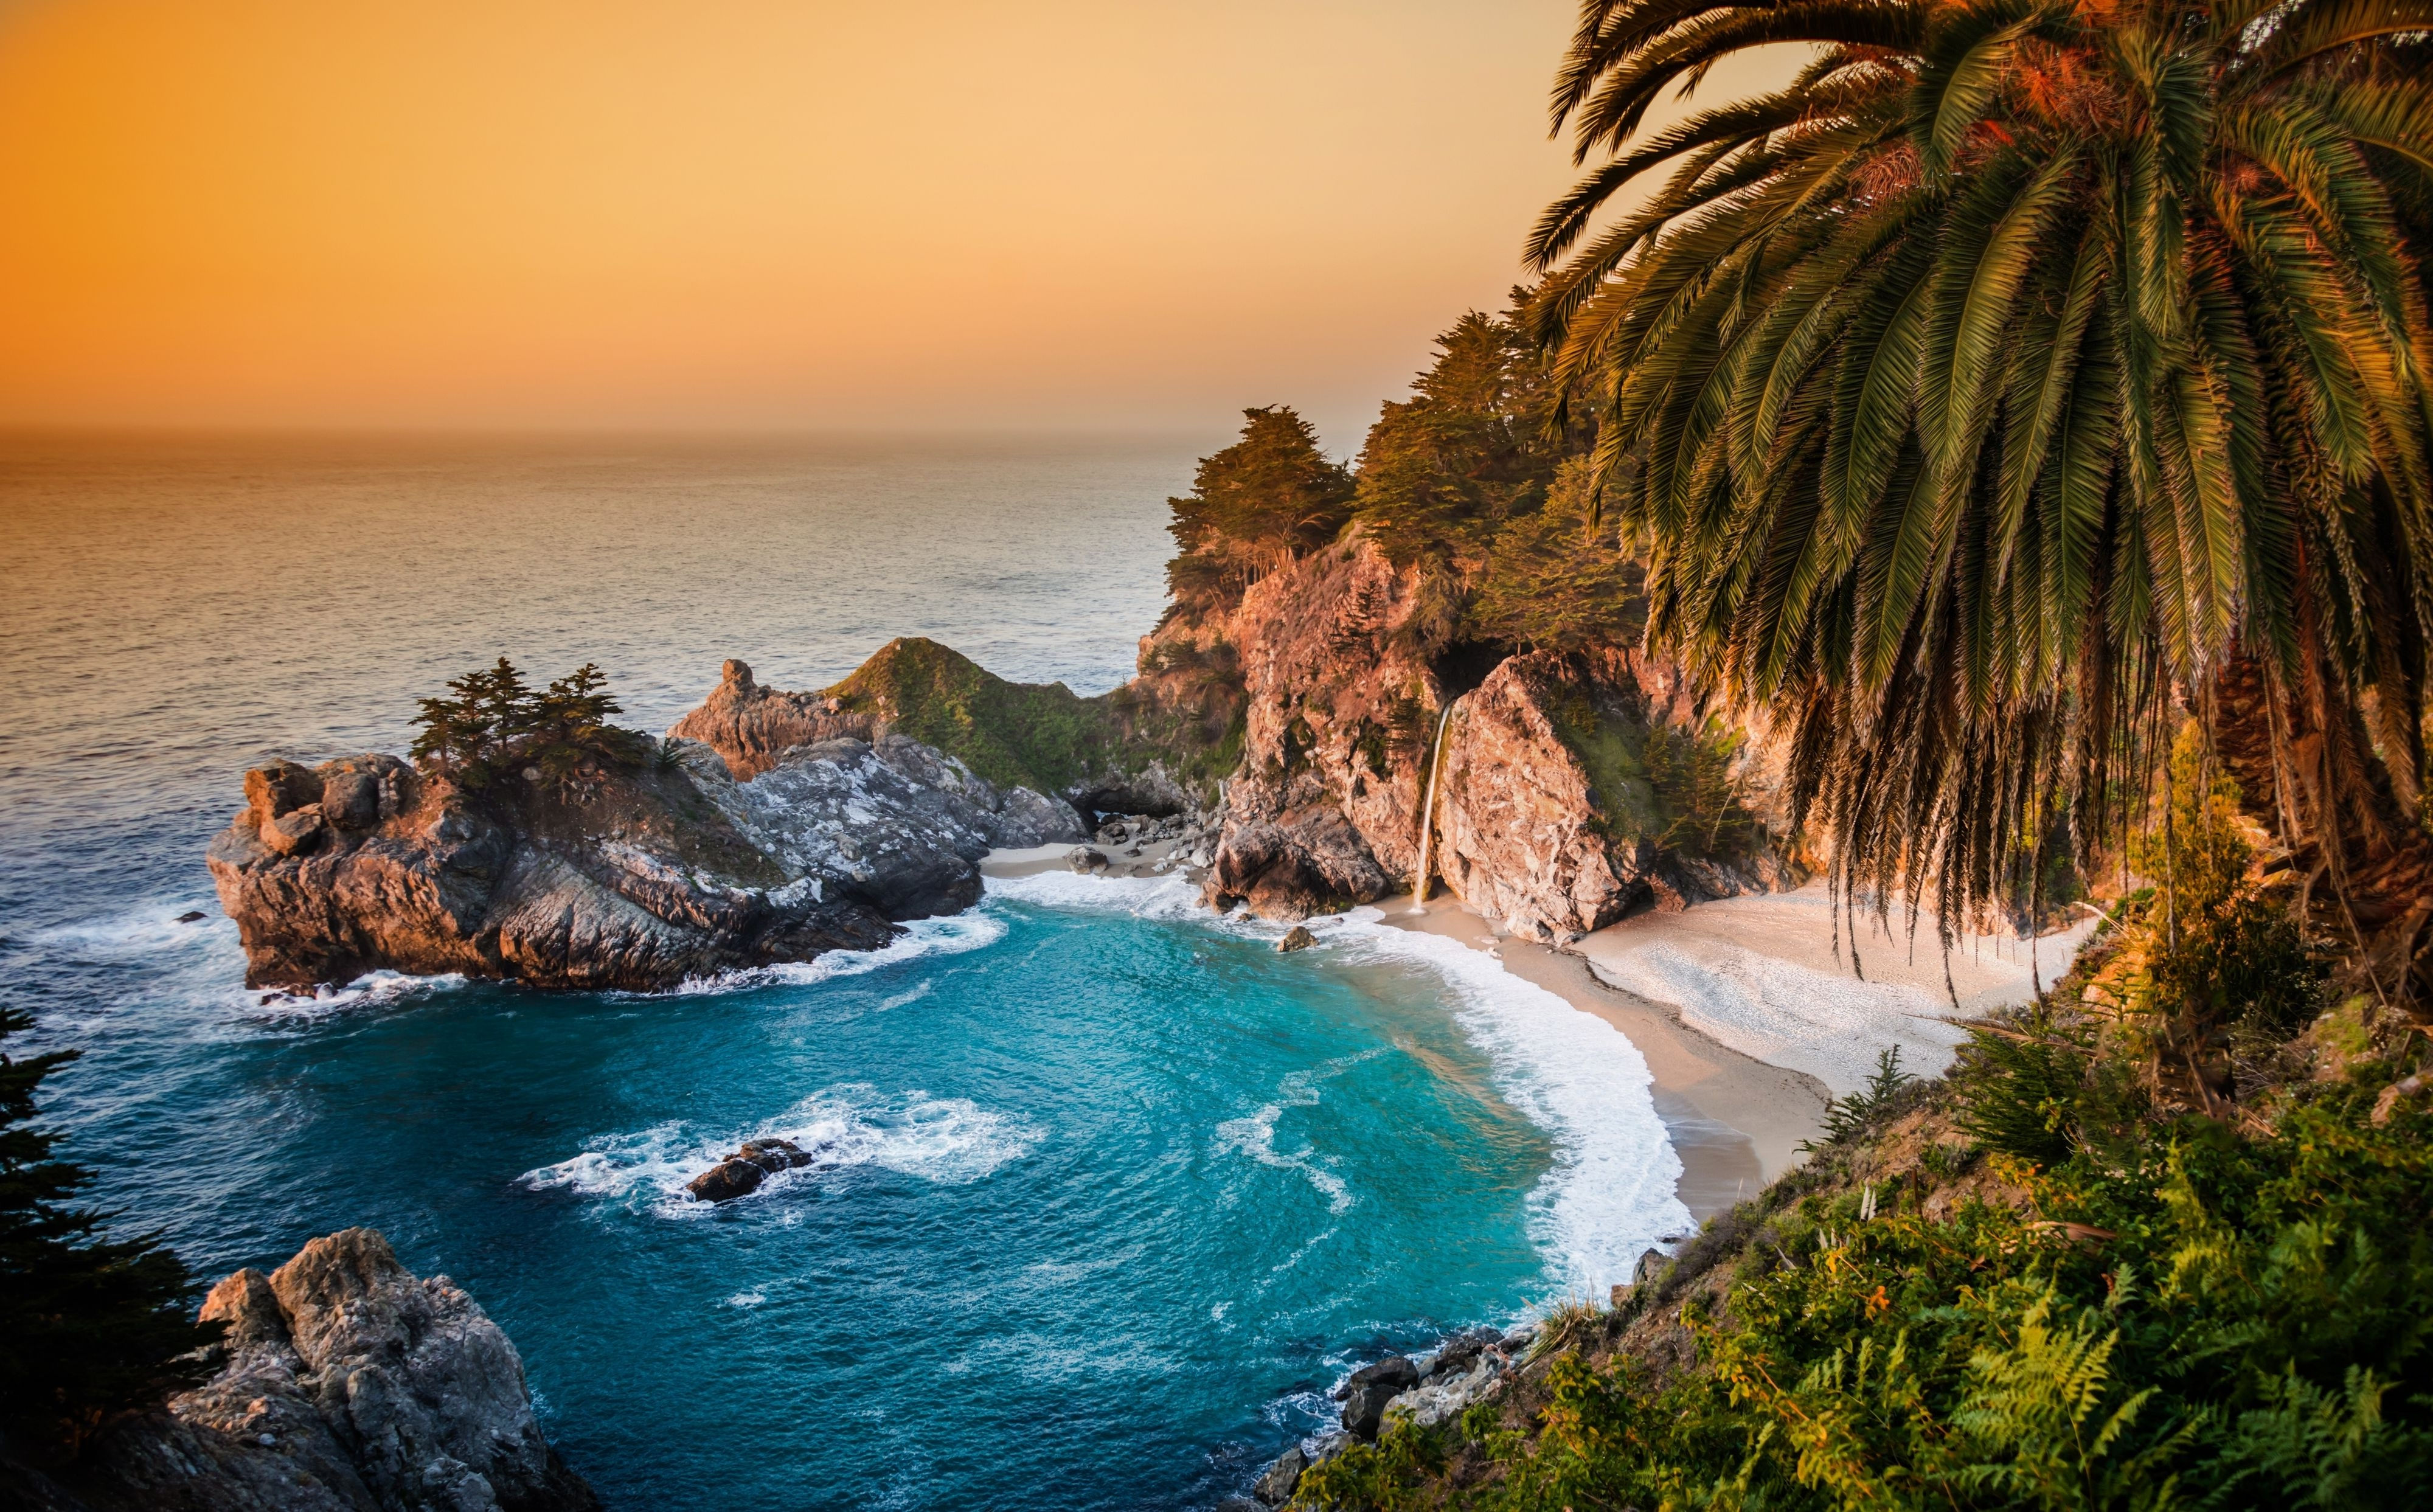 wallpapers posted on 2014 11 16 tags 4800x2751 px beach blue coast 4000x2486